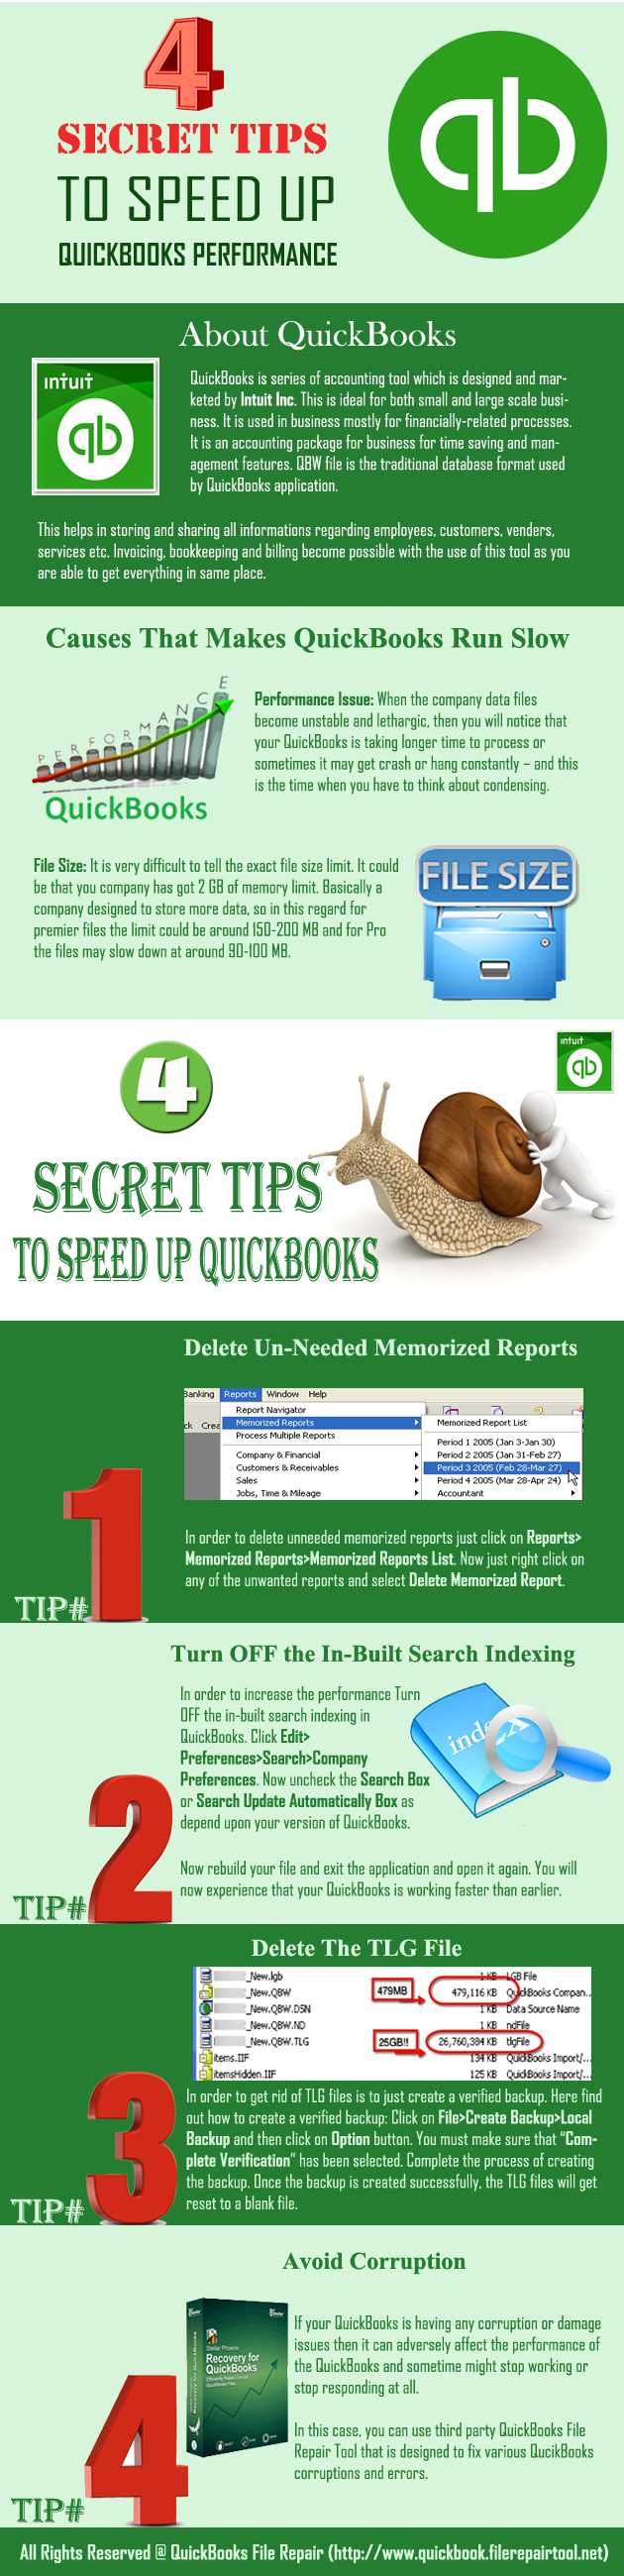 Infographic-4-Secret-Tips-to-Speed-Up-QuickBooks-Performance